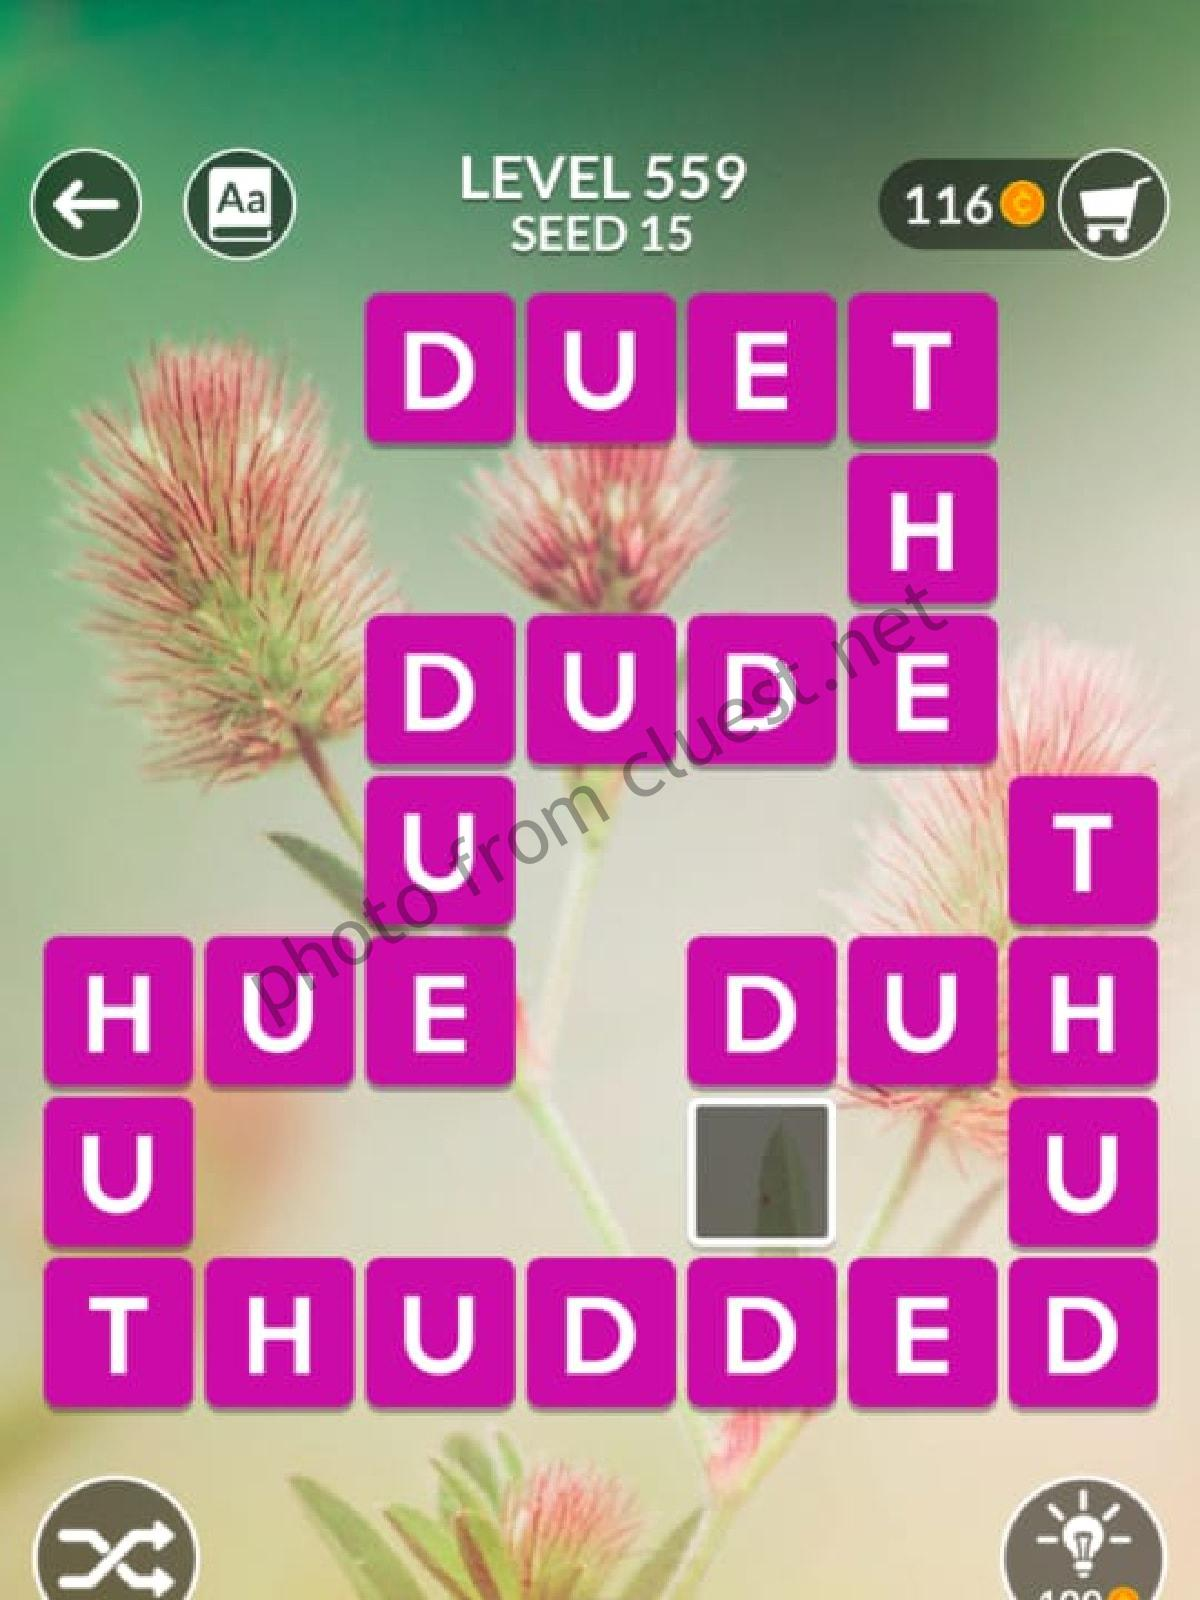 Wordscapes Level 559 Seed 15 Answers Cluest